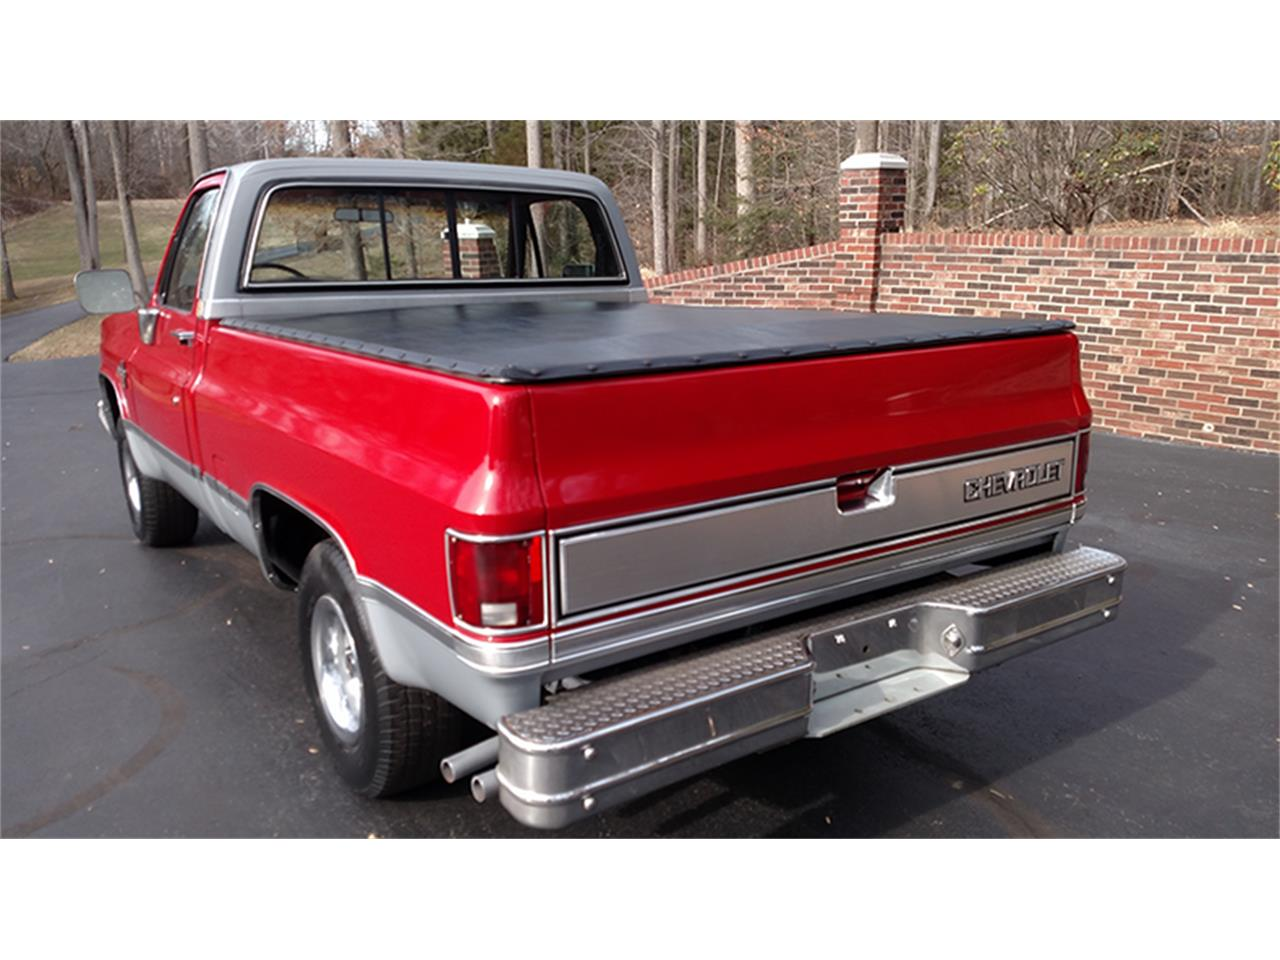 1985 Chevrolet Silverado (CC-1066993) for sale in Huntingtown, Maryland